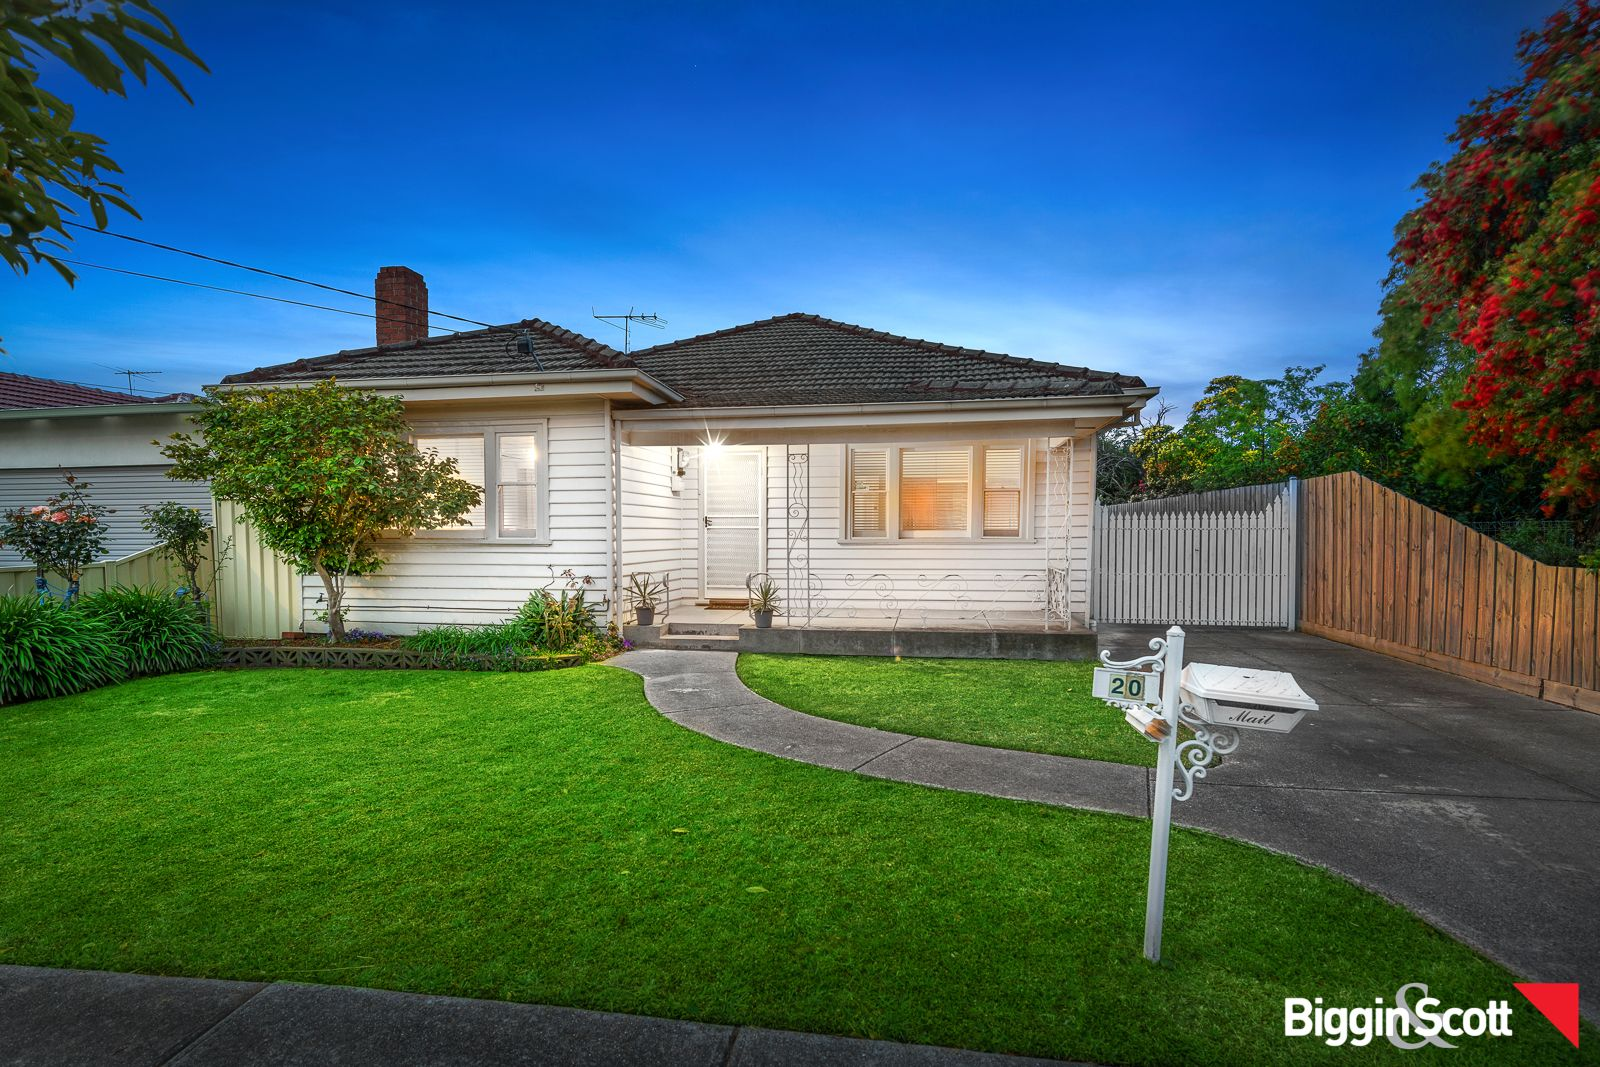 20 Delacey Street, Maidstone VIC 3012, Image 1